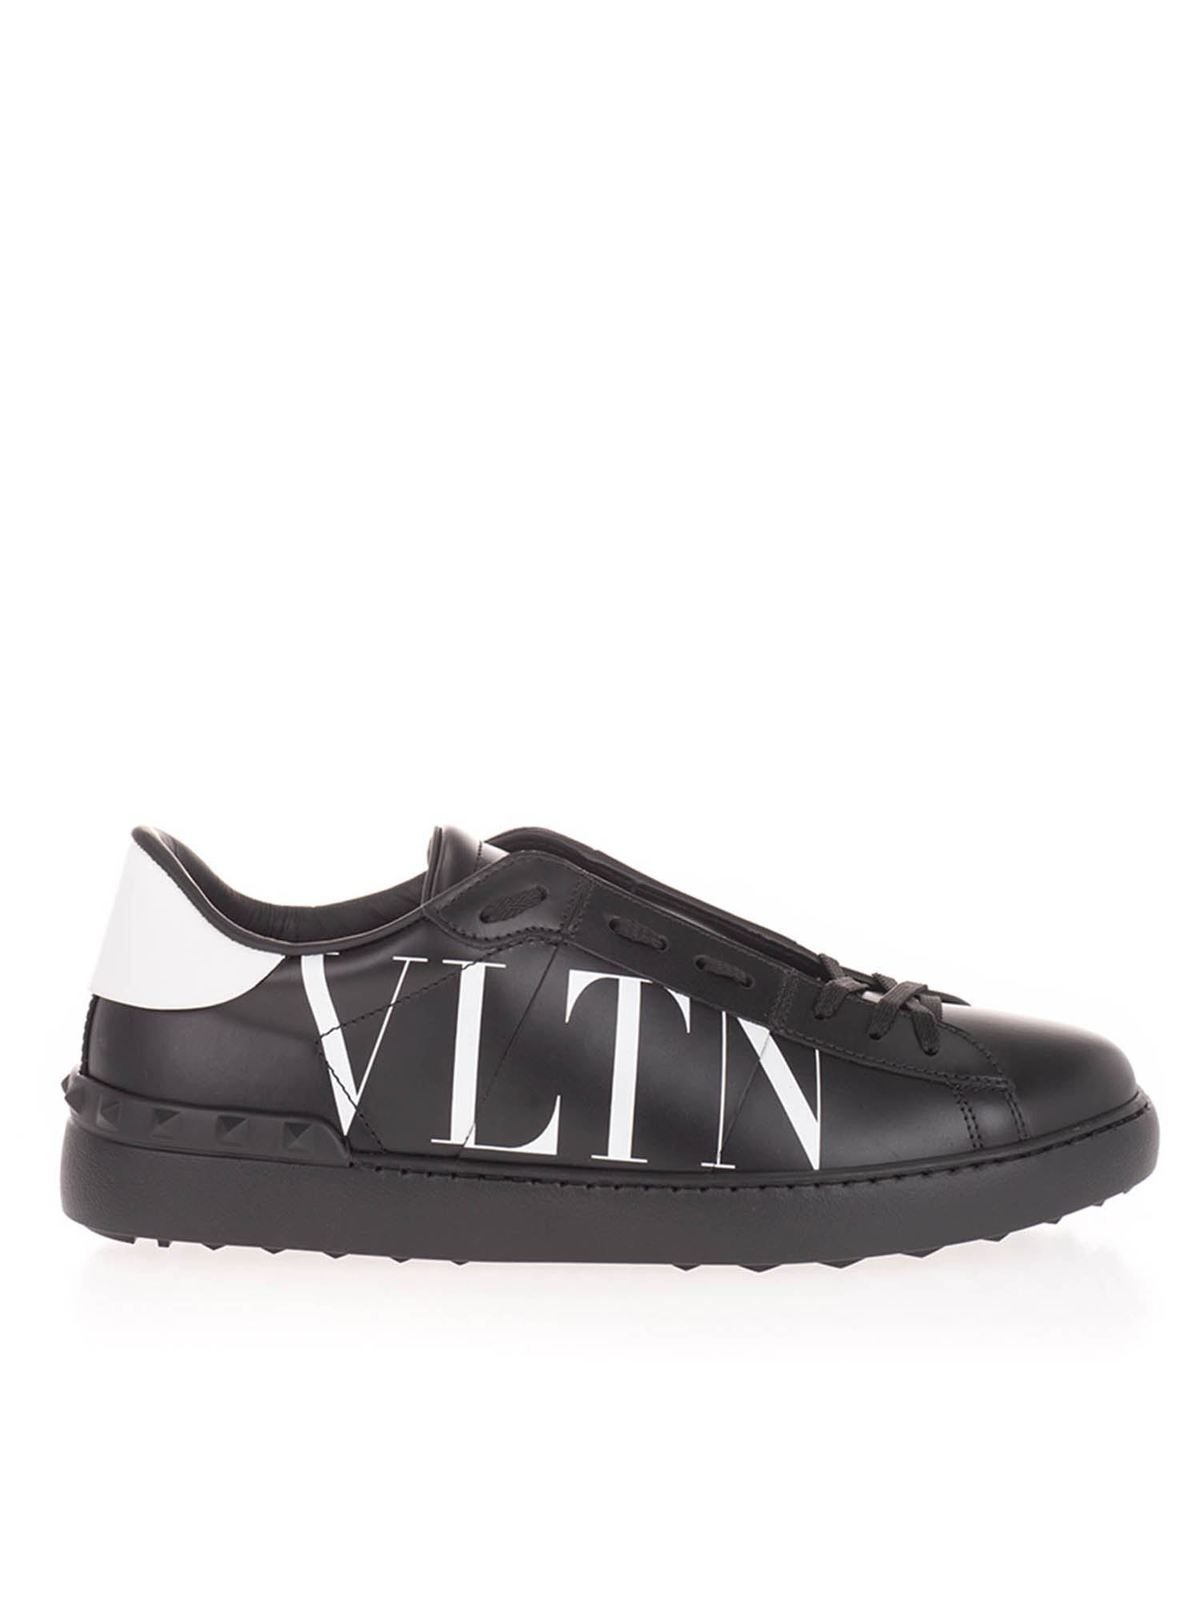 Valentino Leathers OPEN SNEAKERS IN BLACK